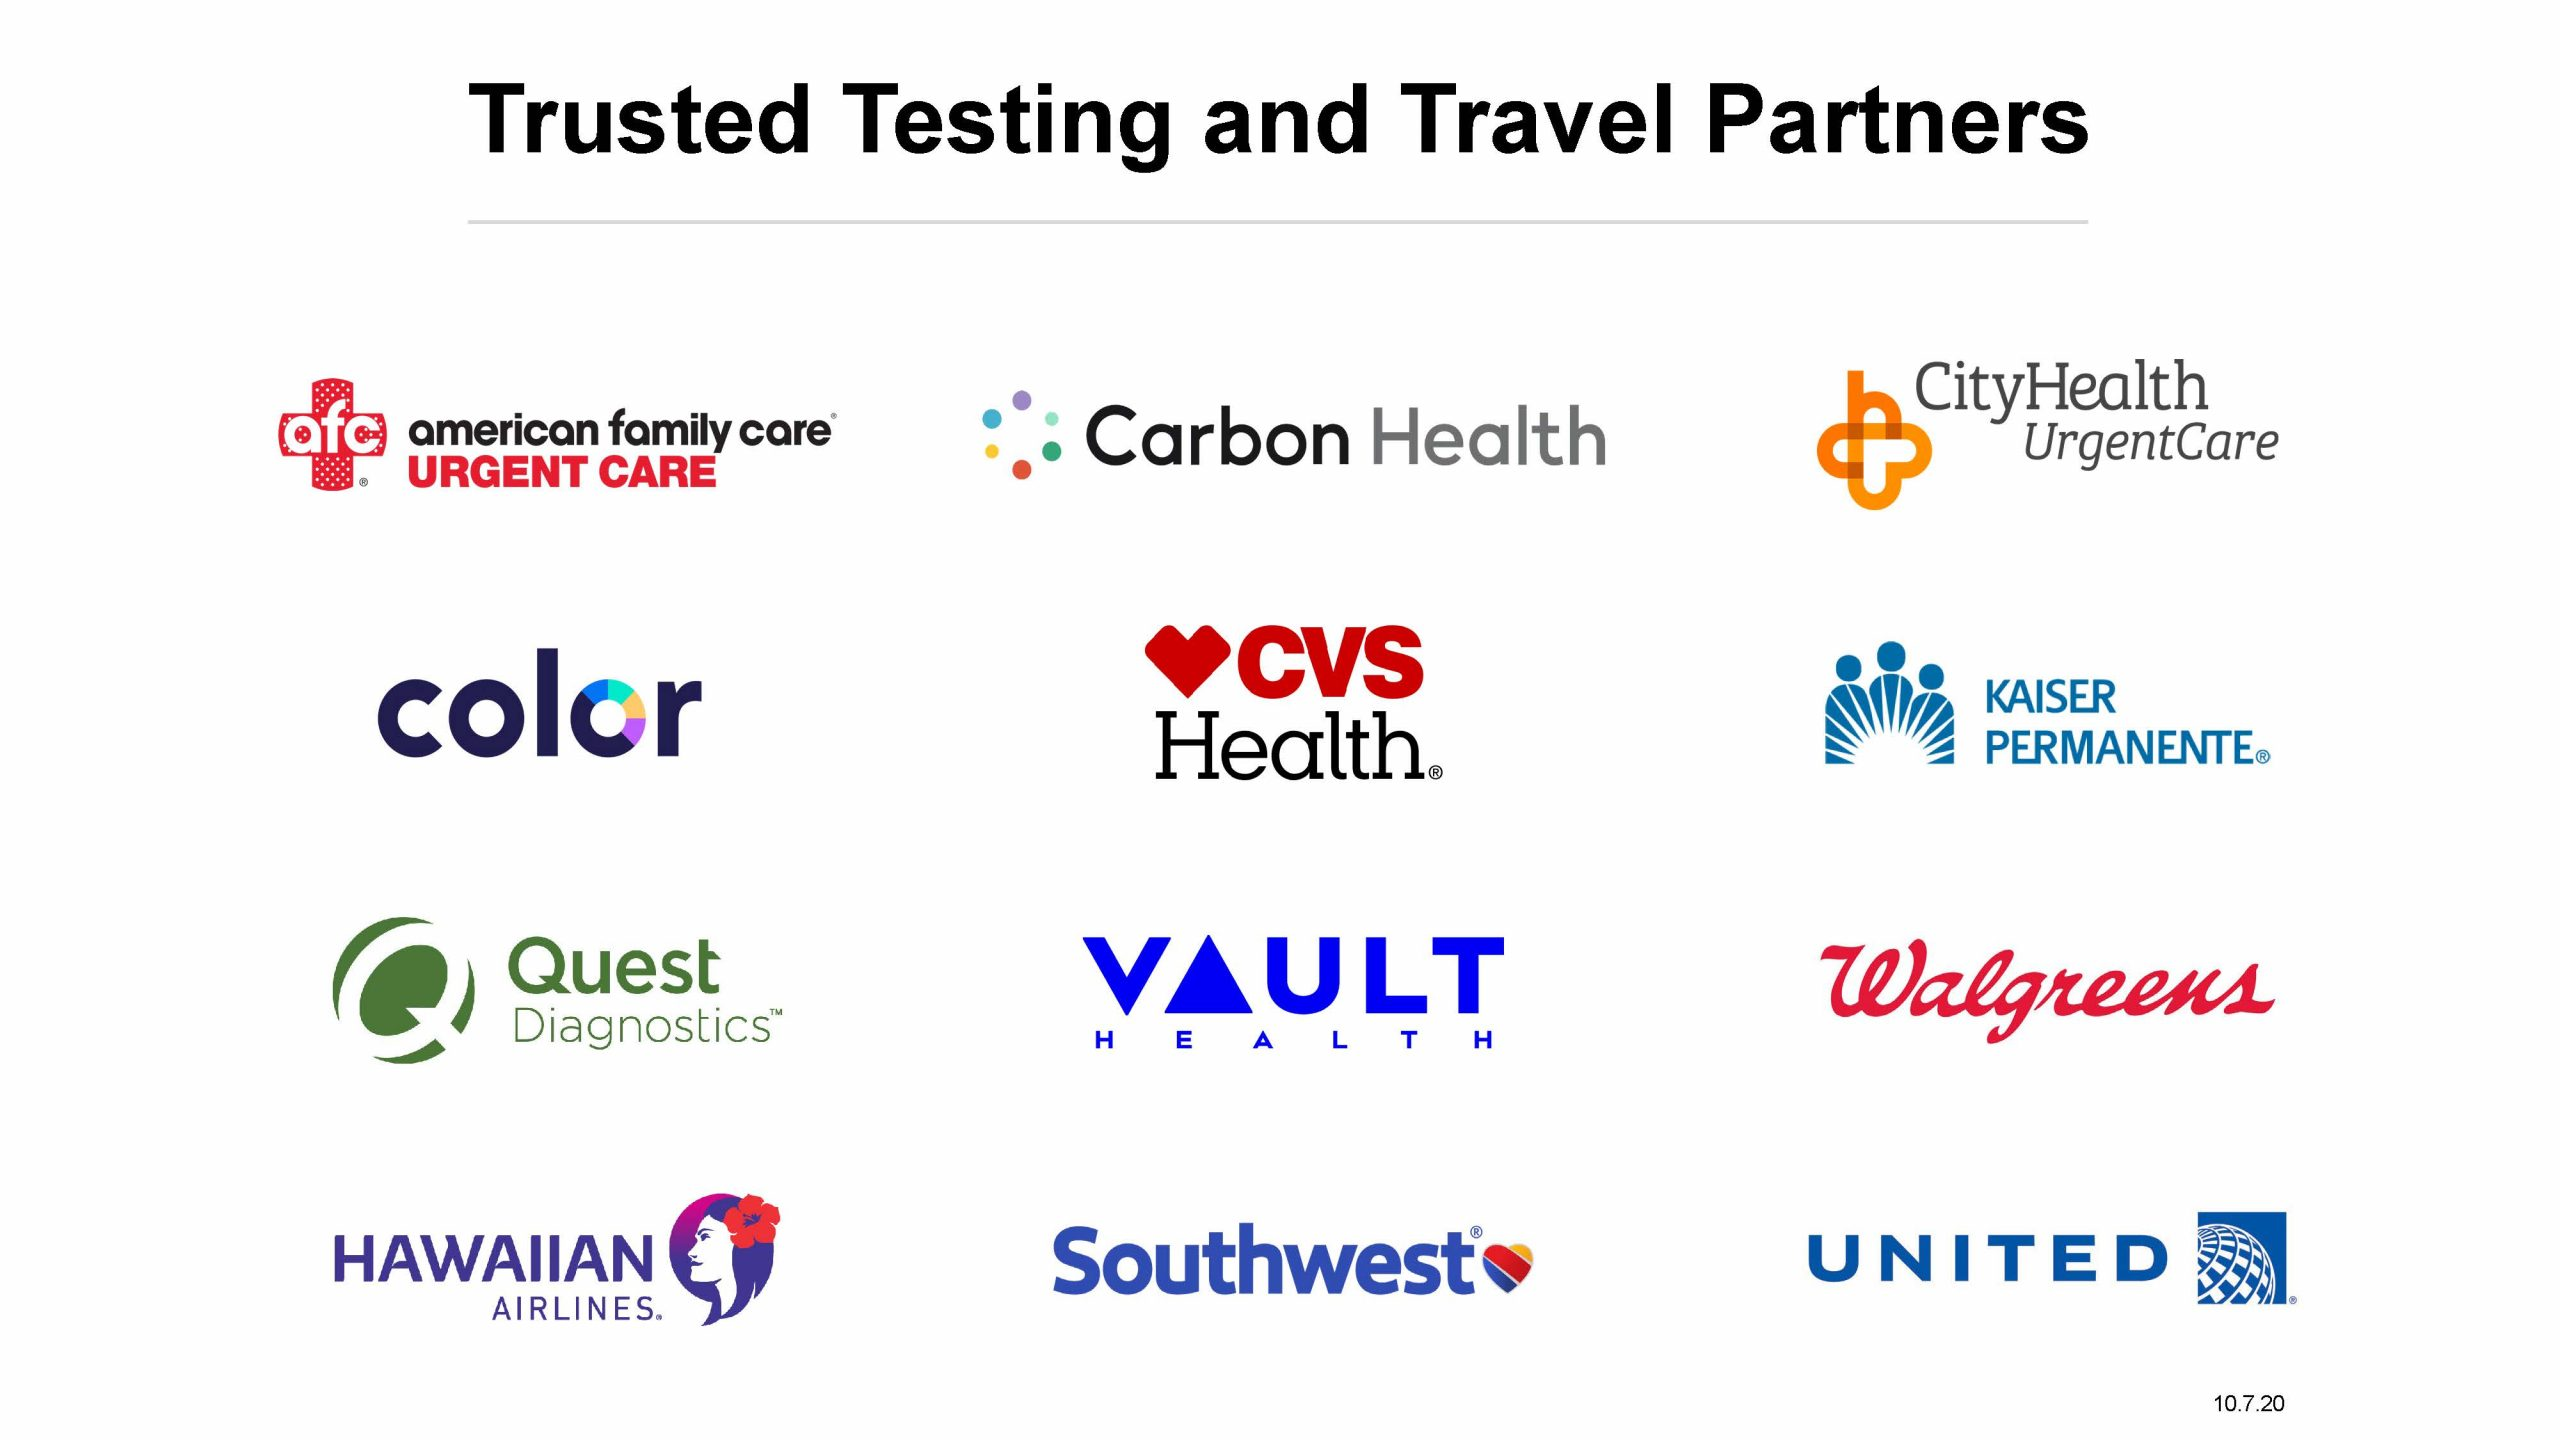 David Y Ige Governor S Office News Release Gov Ige Announces Trusted Testing And Travel Partners For Covid 19 Pre Travel Testing Program That Starts October 15